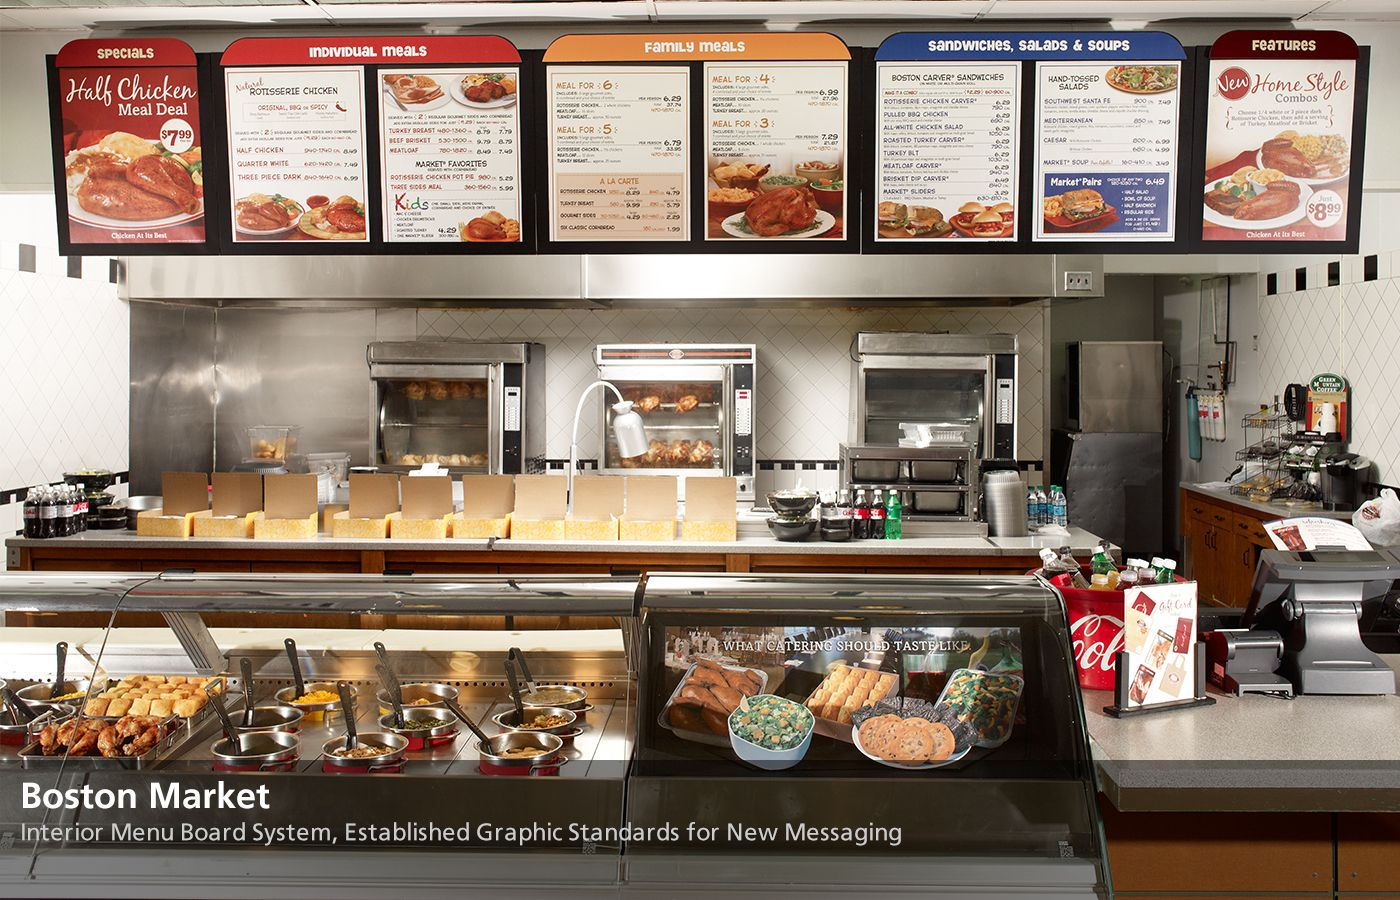 Boston Market Free kids meals, Kids meals, Boston market